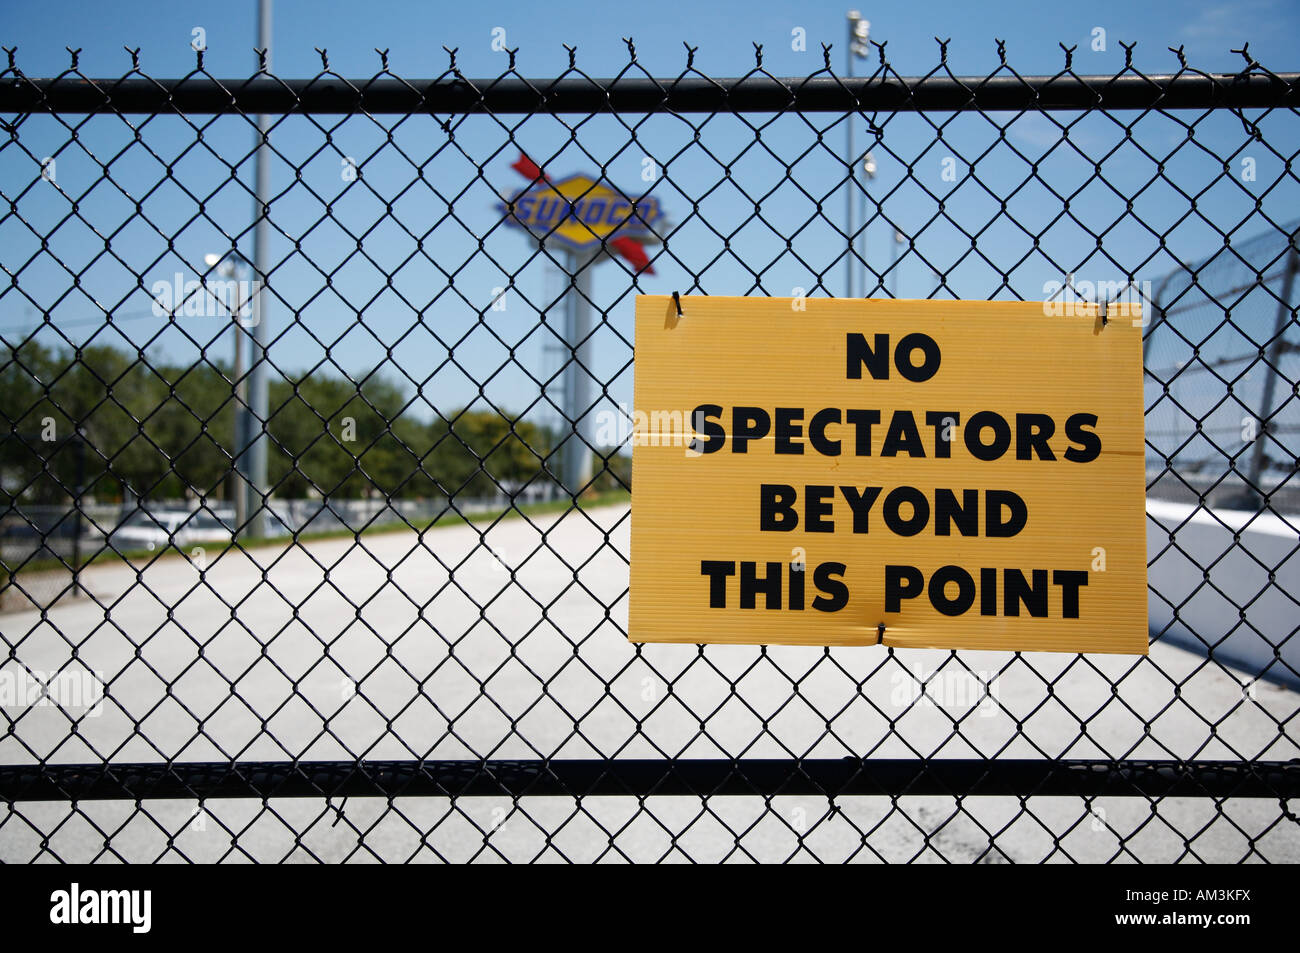 Wire fence with warning sign - Stock Image